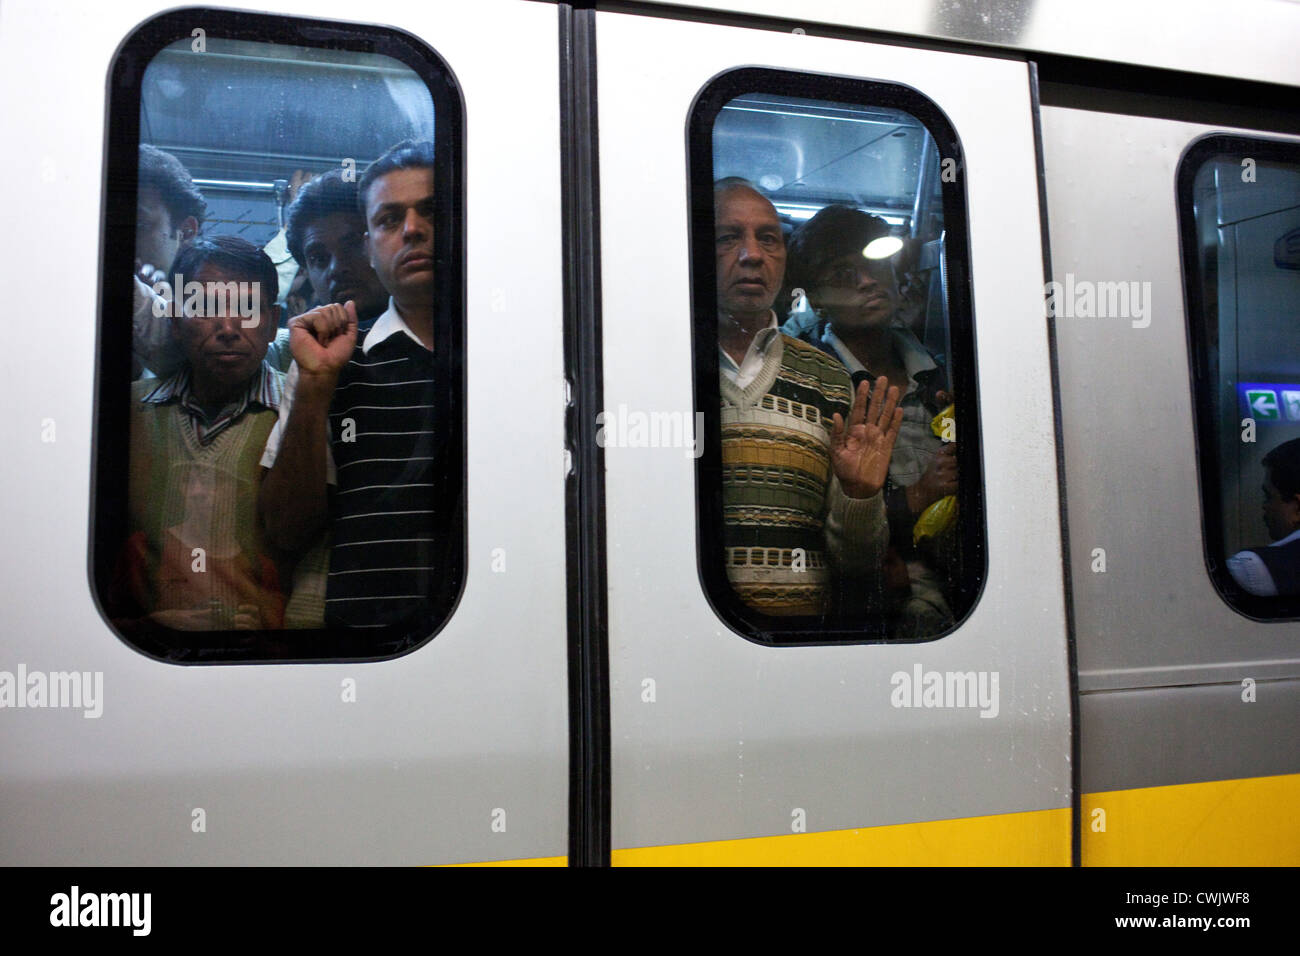 A crowded carriage of metro train at the station in delhi india stock photo royalty free image - Carrage metro ...